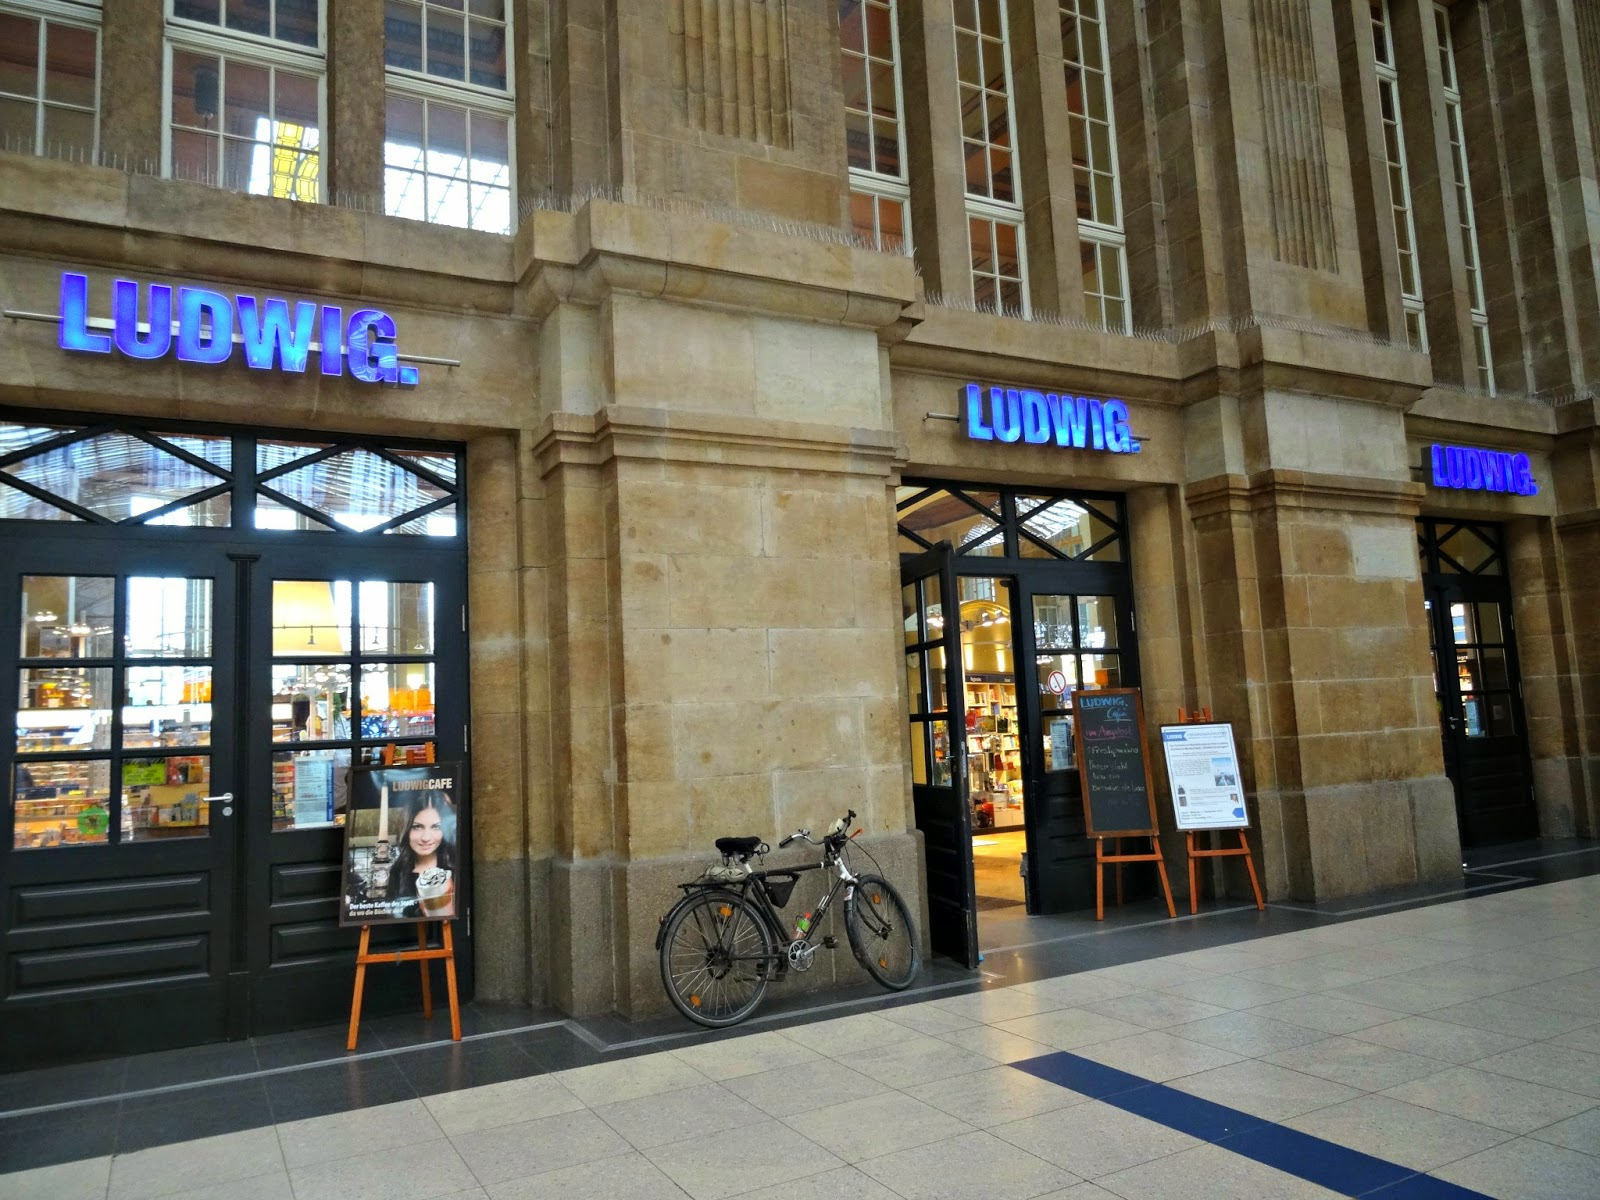 Ludwigs at leipzig Train Station